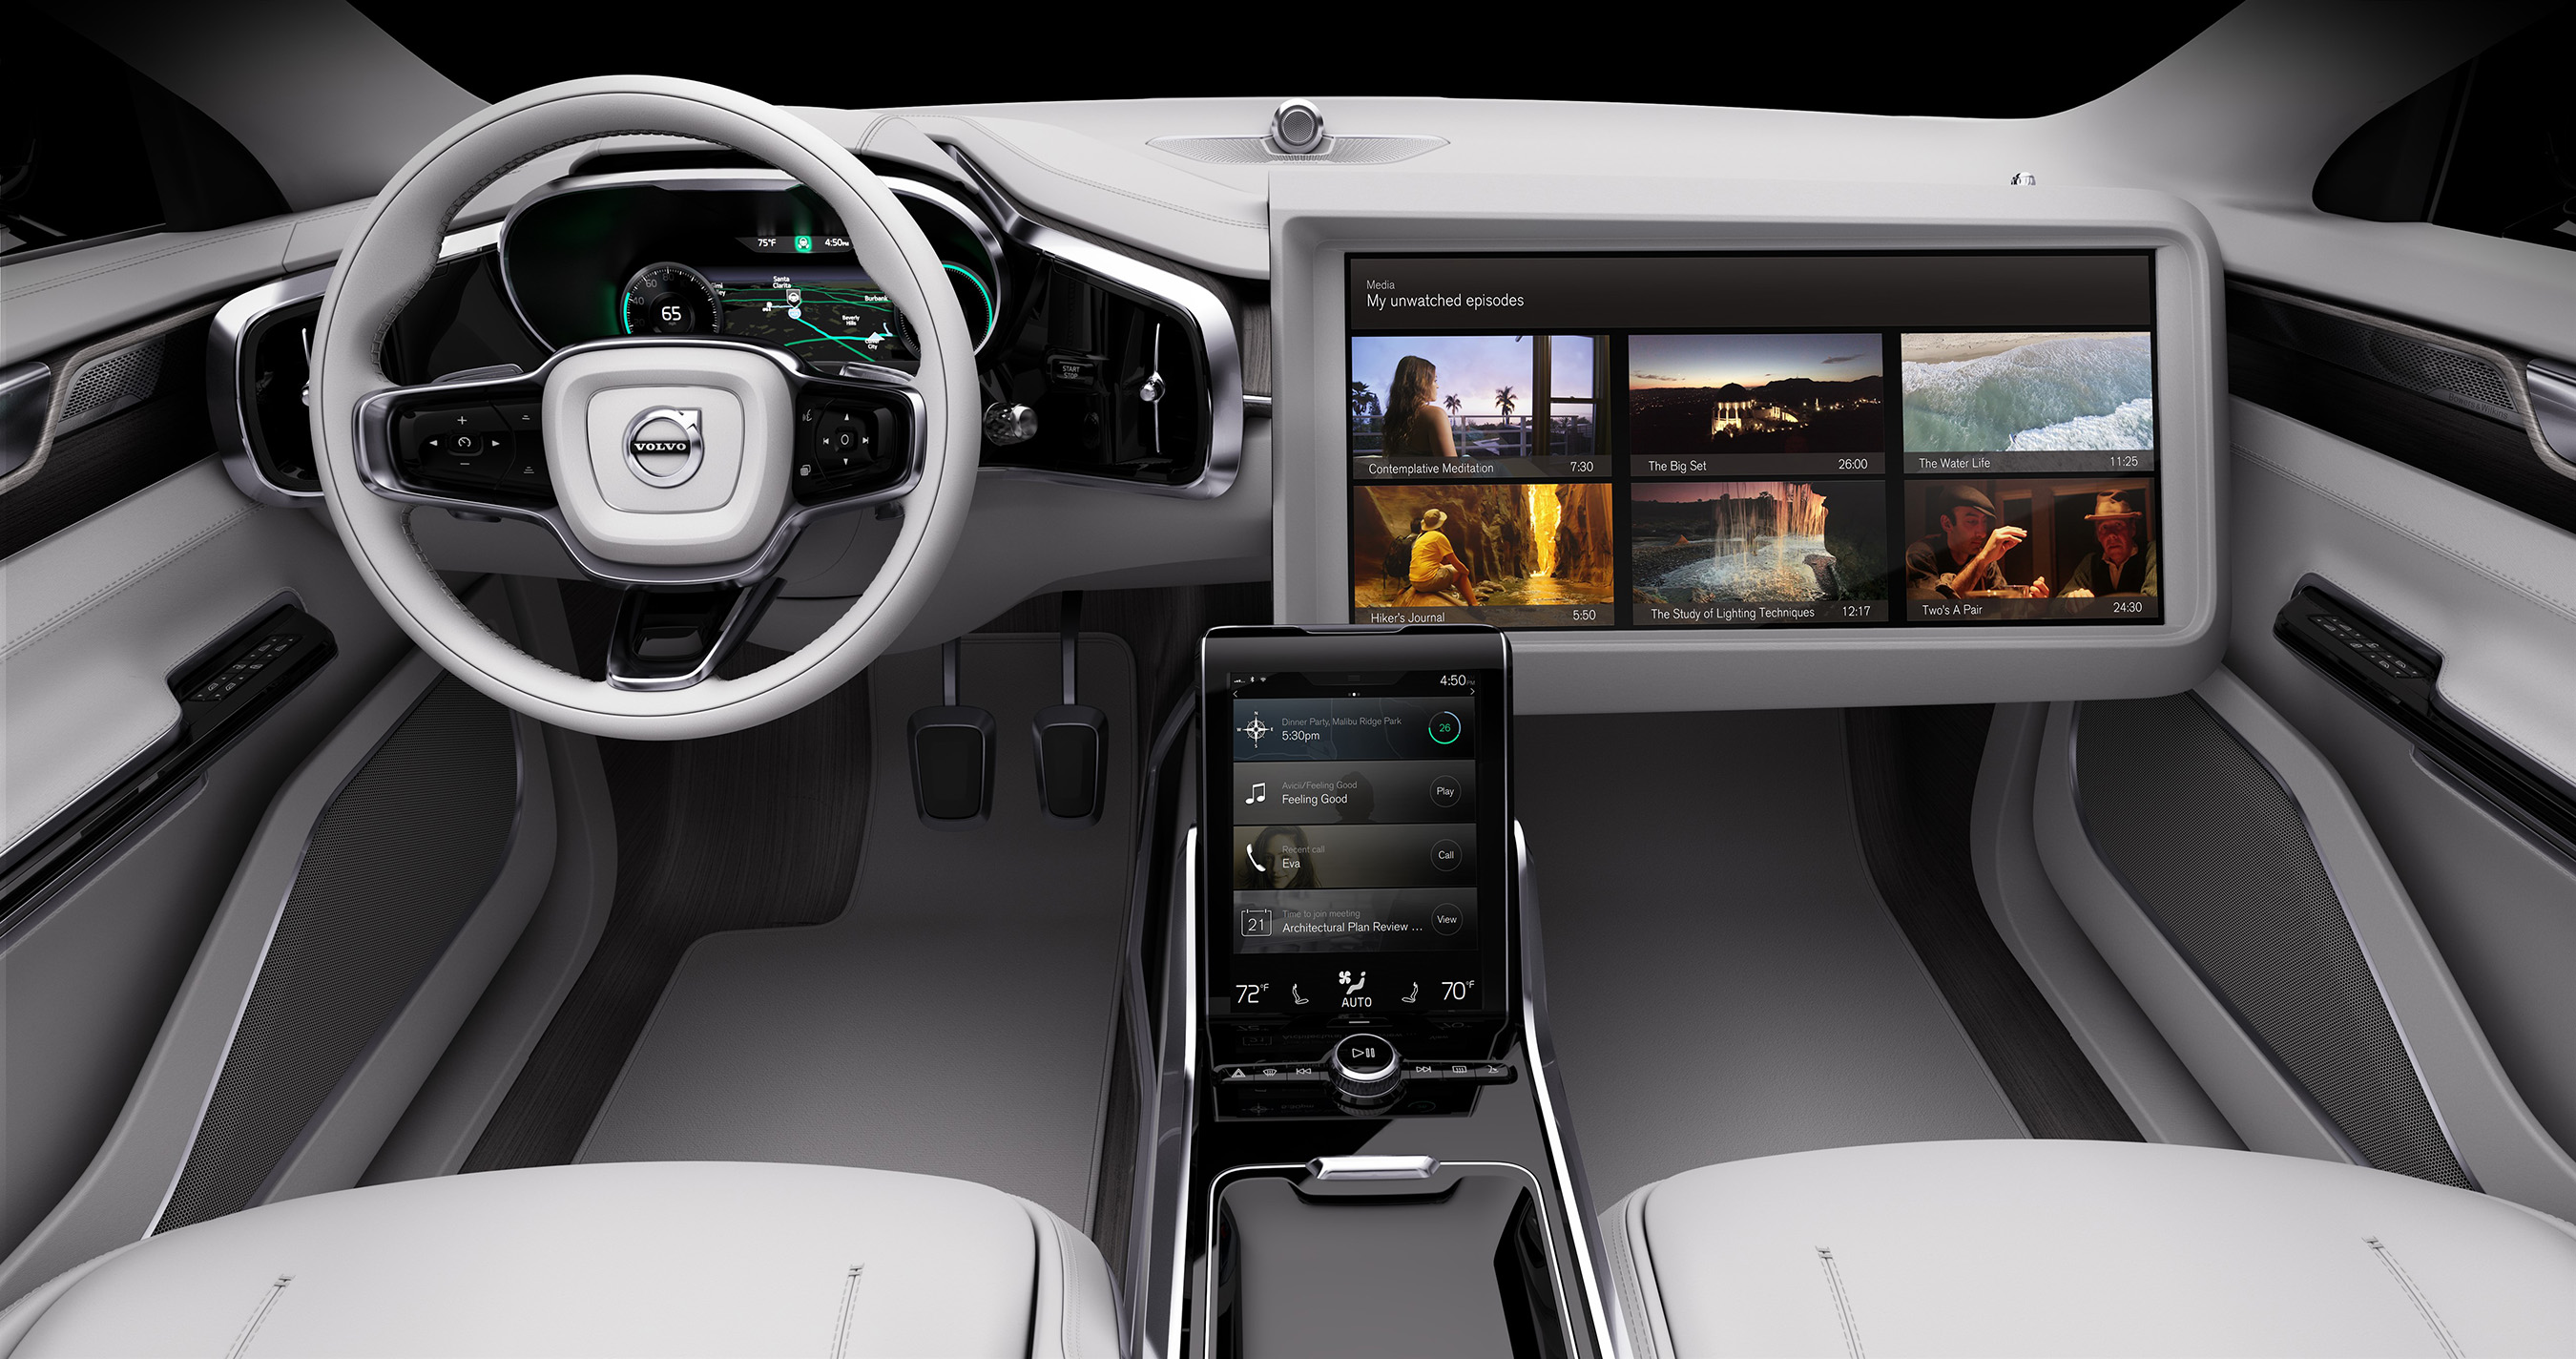 Volvo's making a media streaming system for autonomous cars